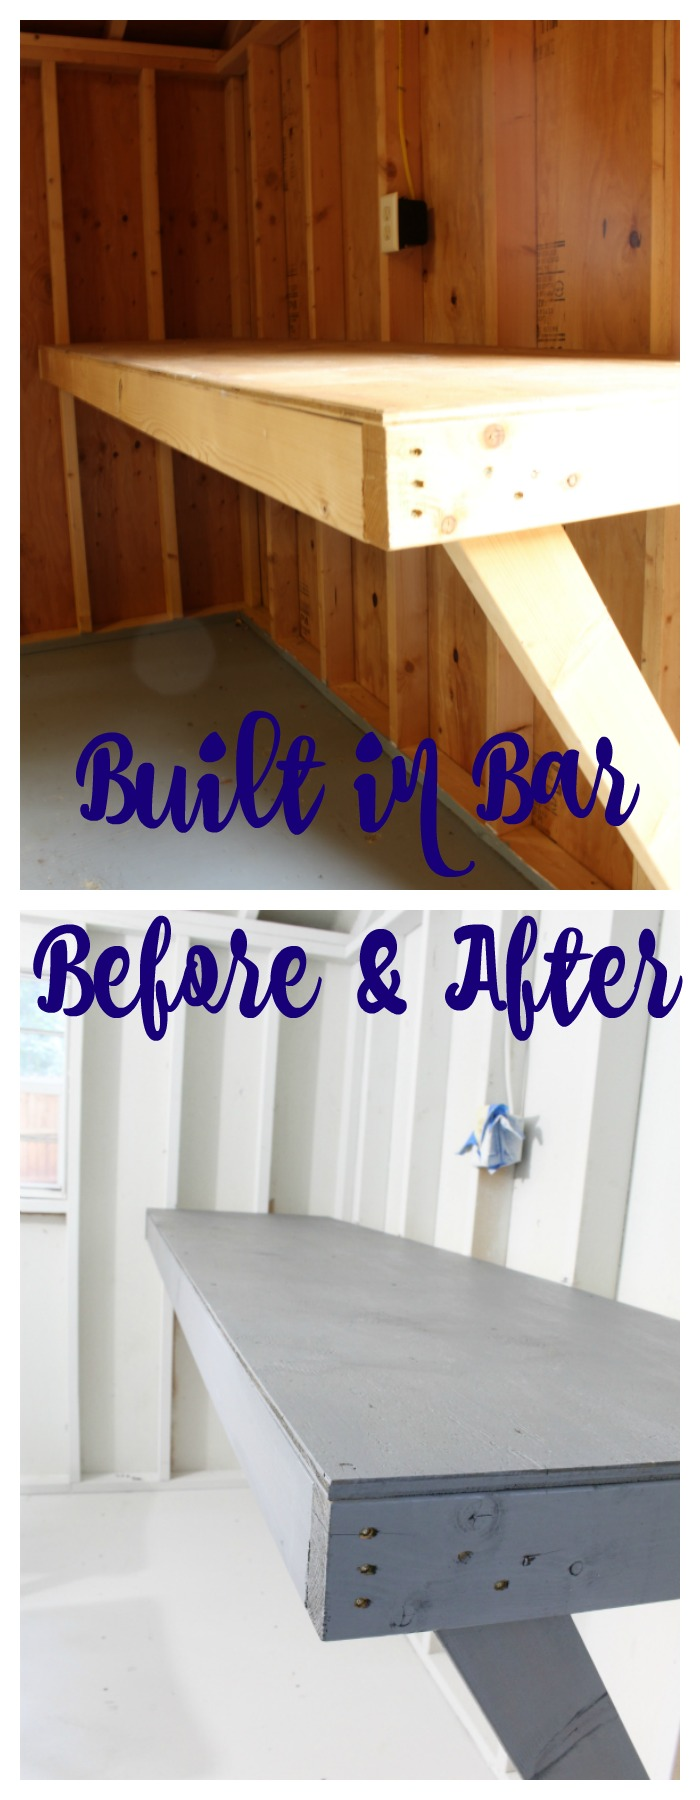 built-in-bar-before-and-after-she-shed-one-room-challenge